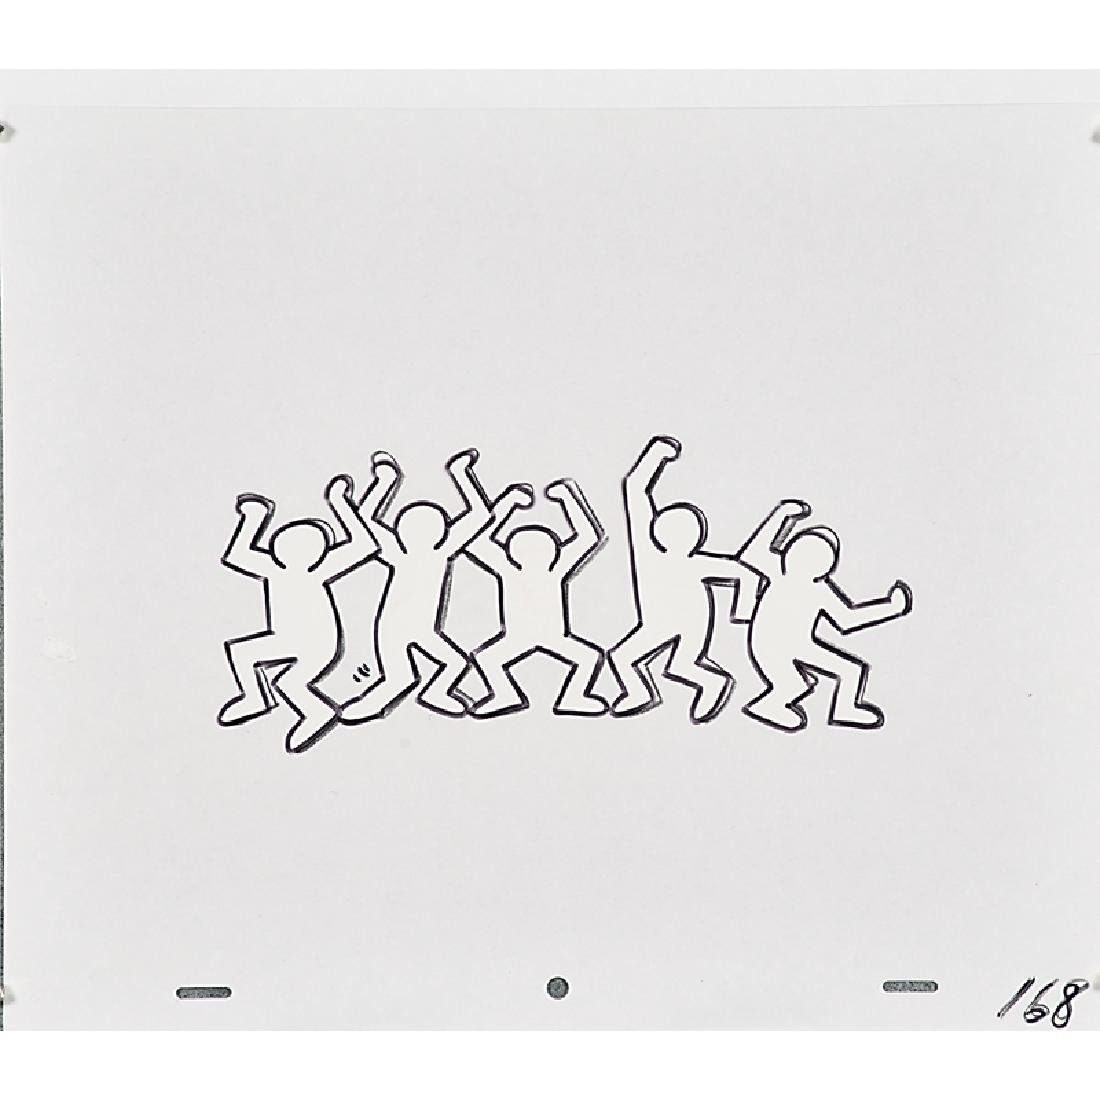 AFTER KEITH HARING (American, 1958-1990)